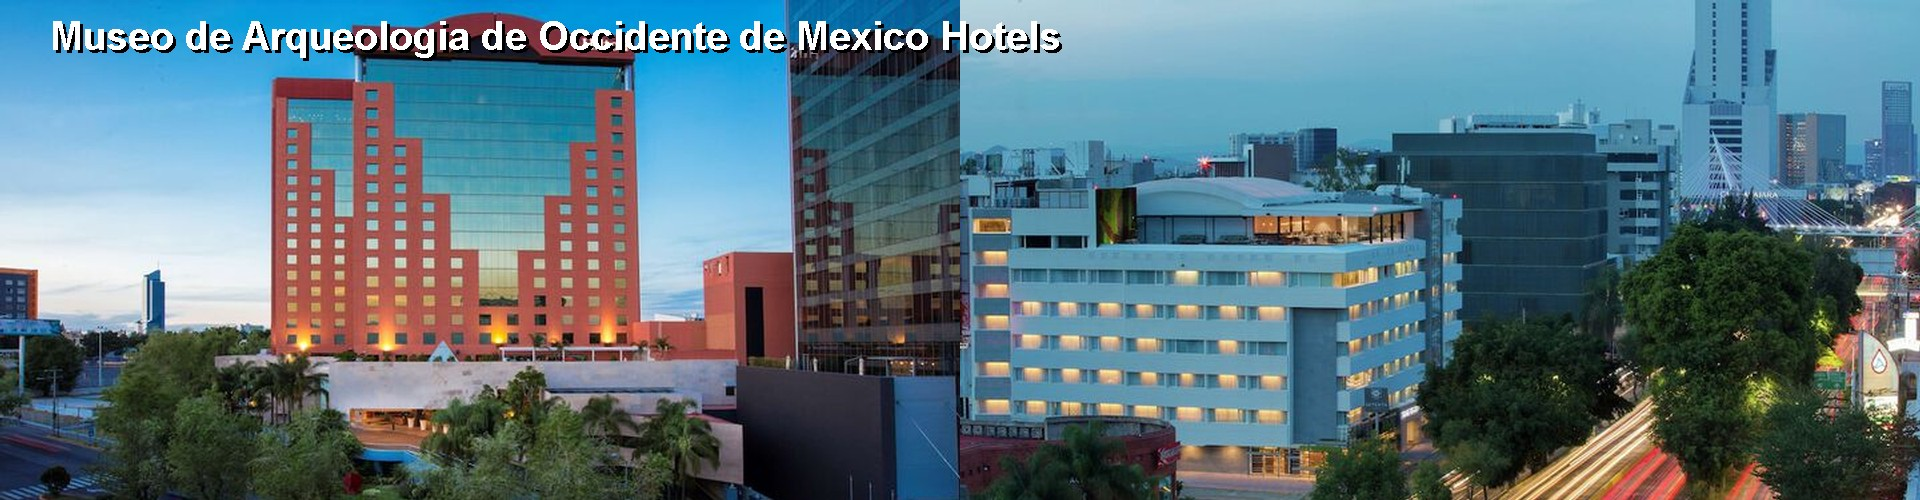 4 Best Hotels near Museo de Arqueologia de Occidente de Mexico